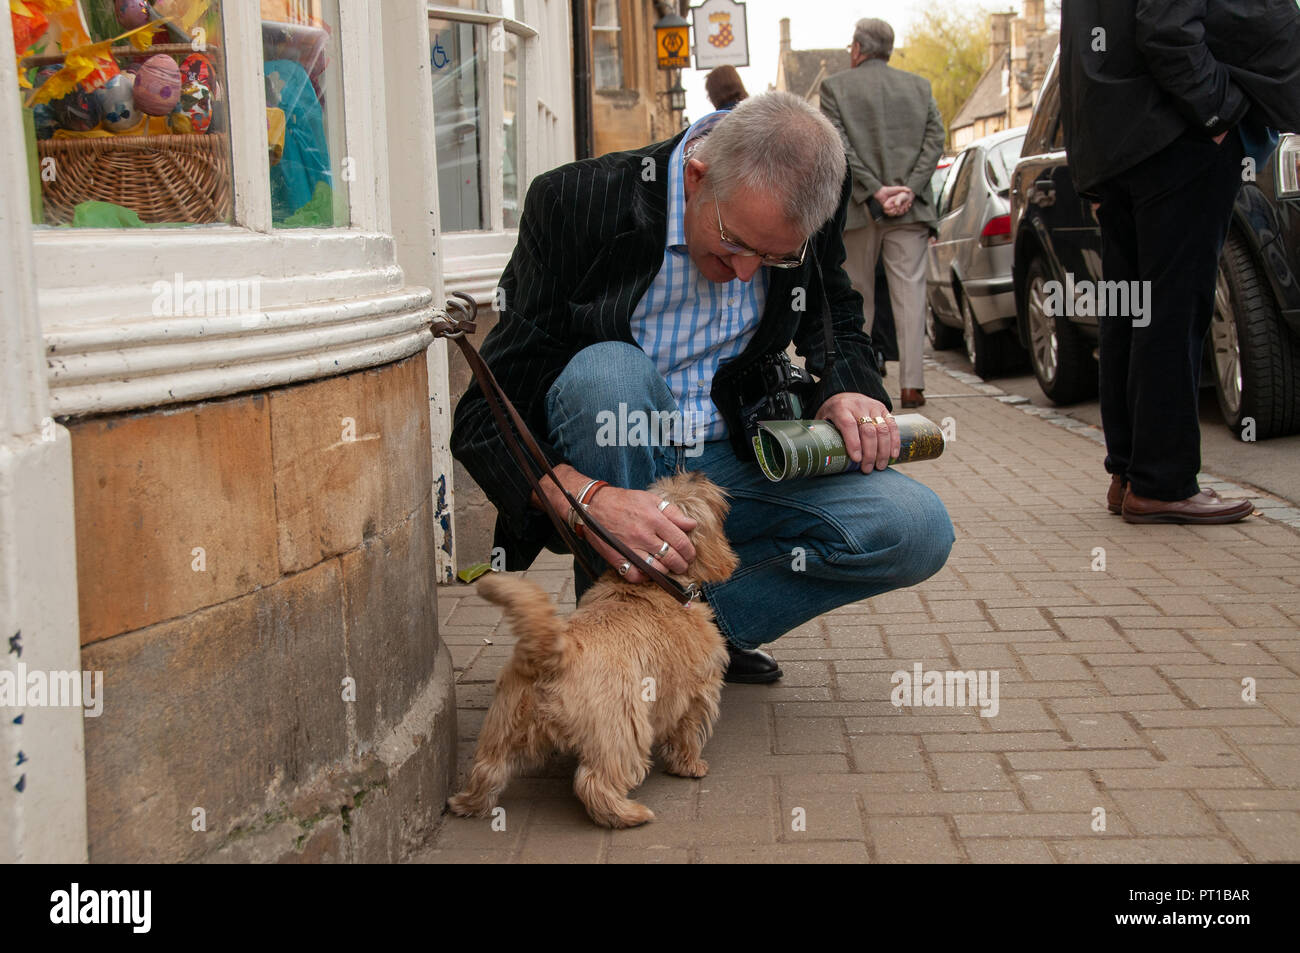 Mature well dressed kindly man hunches down to stroke a small terrier dog tied up outside a shop in Chipping Campden, Cotswolds. - Stock Image